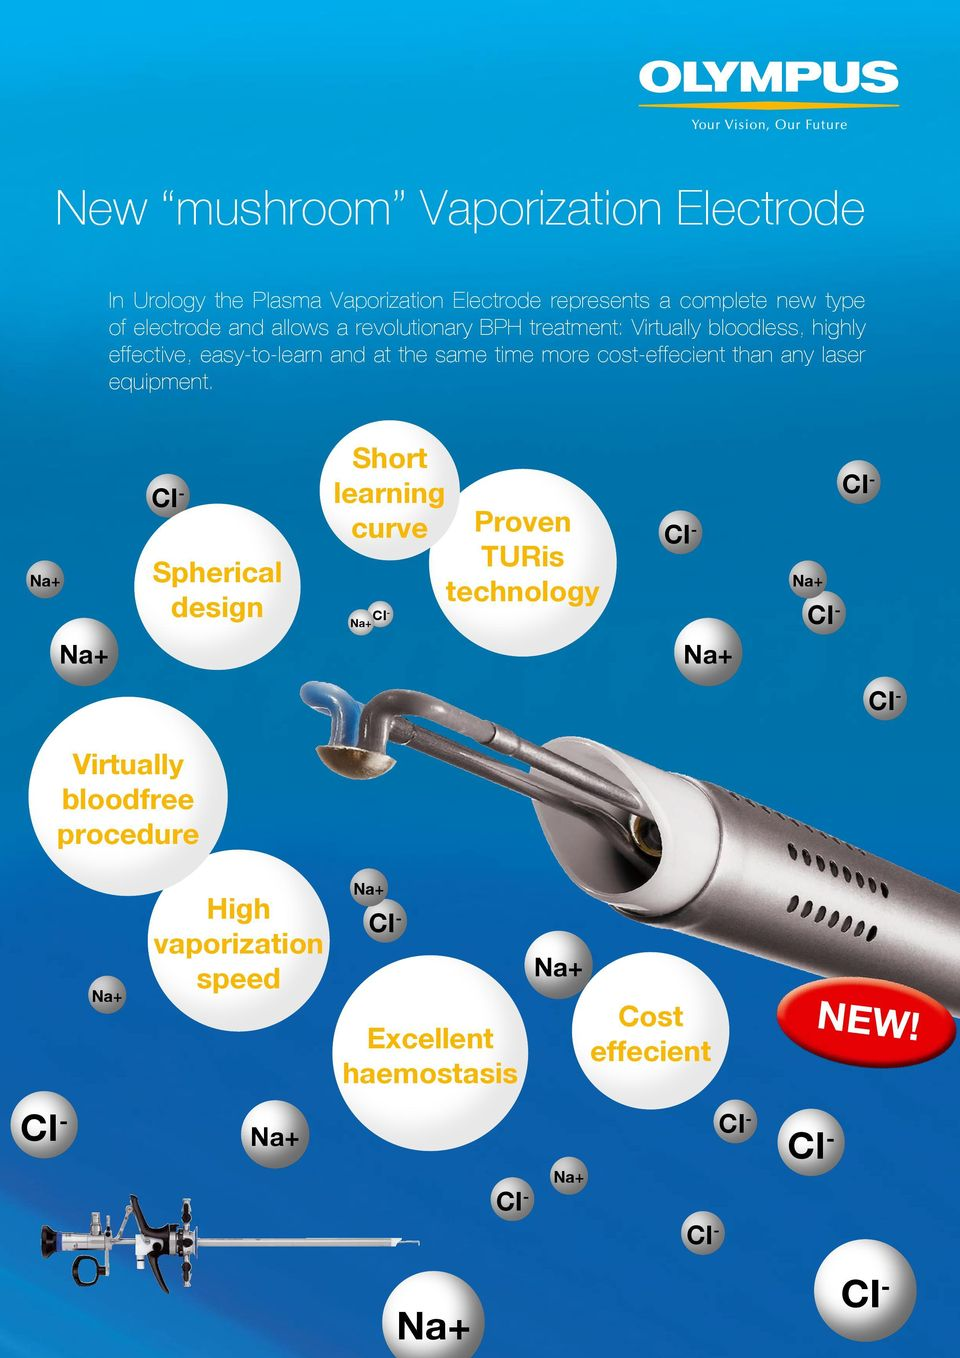 Na+ Na+ Short learning CI CI - - curve Proven CI - TURis Spherical Na+ technology design CI CI - - Na+ Na+ CI - Virtually bloodfree procedure Na+